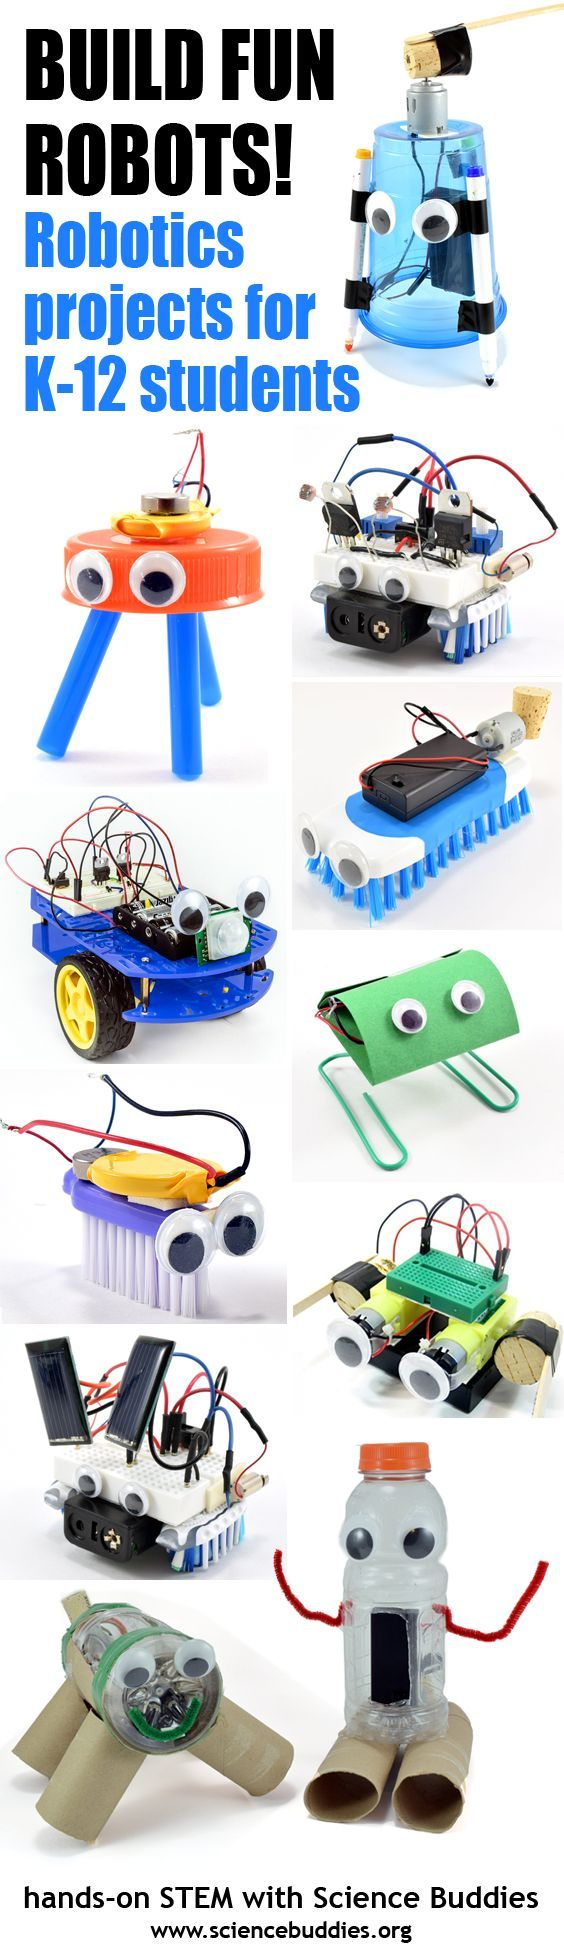 Explore student #robotics projects, activities, kits, and lesson plans. [Science Buddies, http://www.sciencebuddies.org/blog/2017/04/build-fun-robots-with-students.php?from=Pinterest] #STEM #roboweek